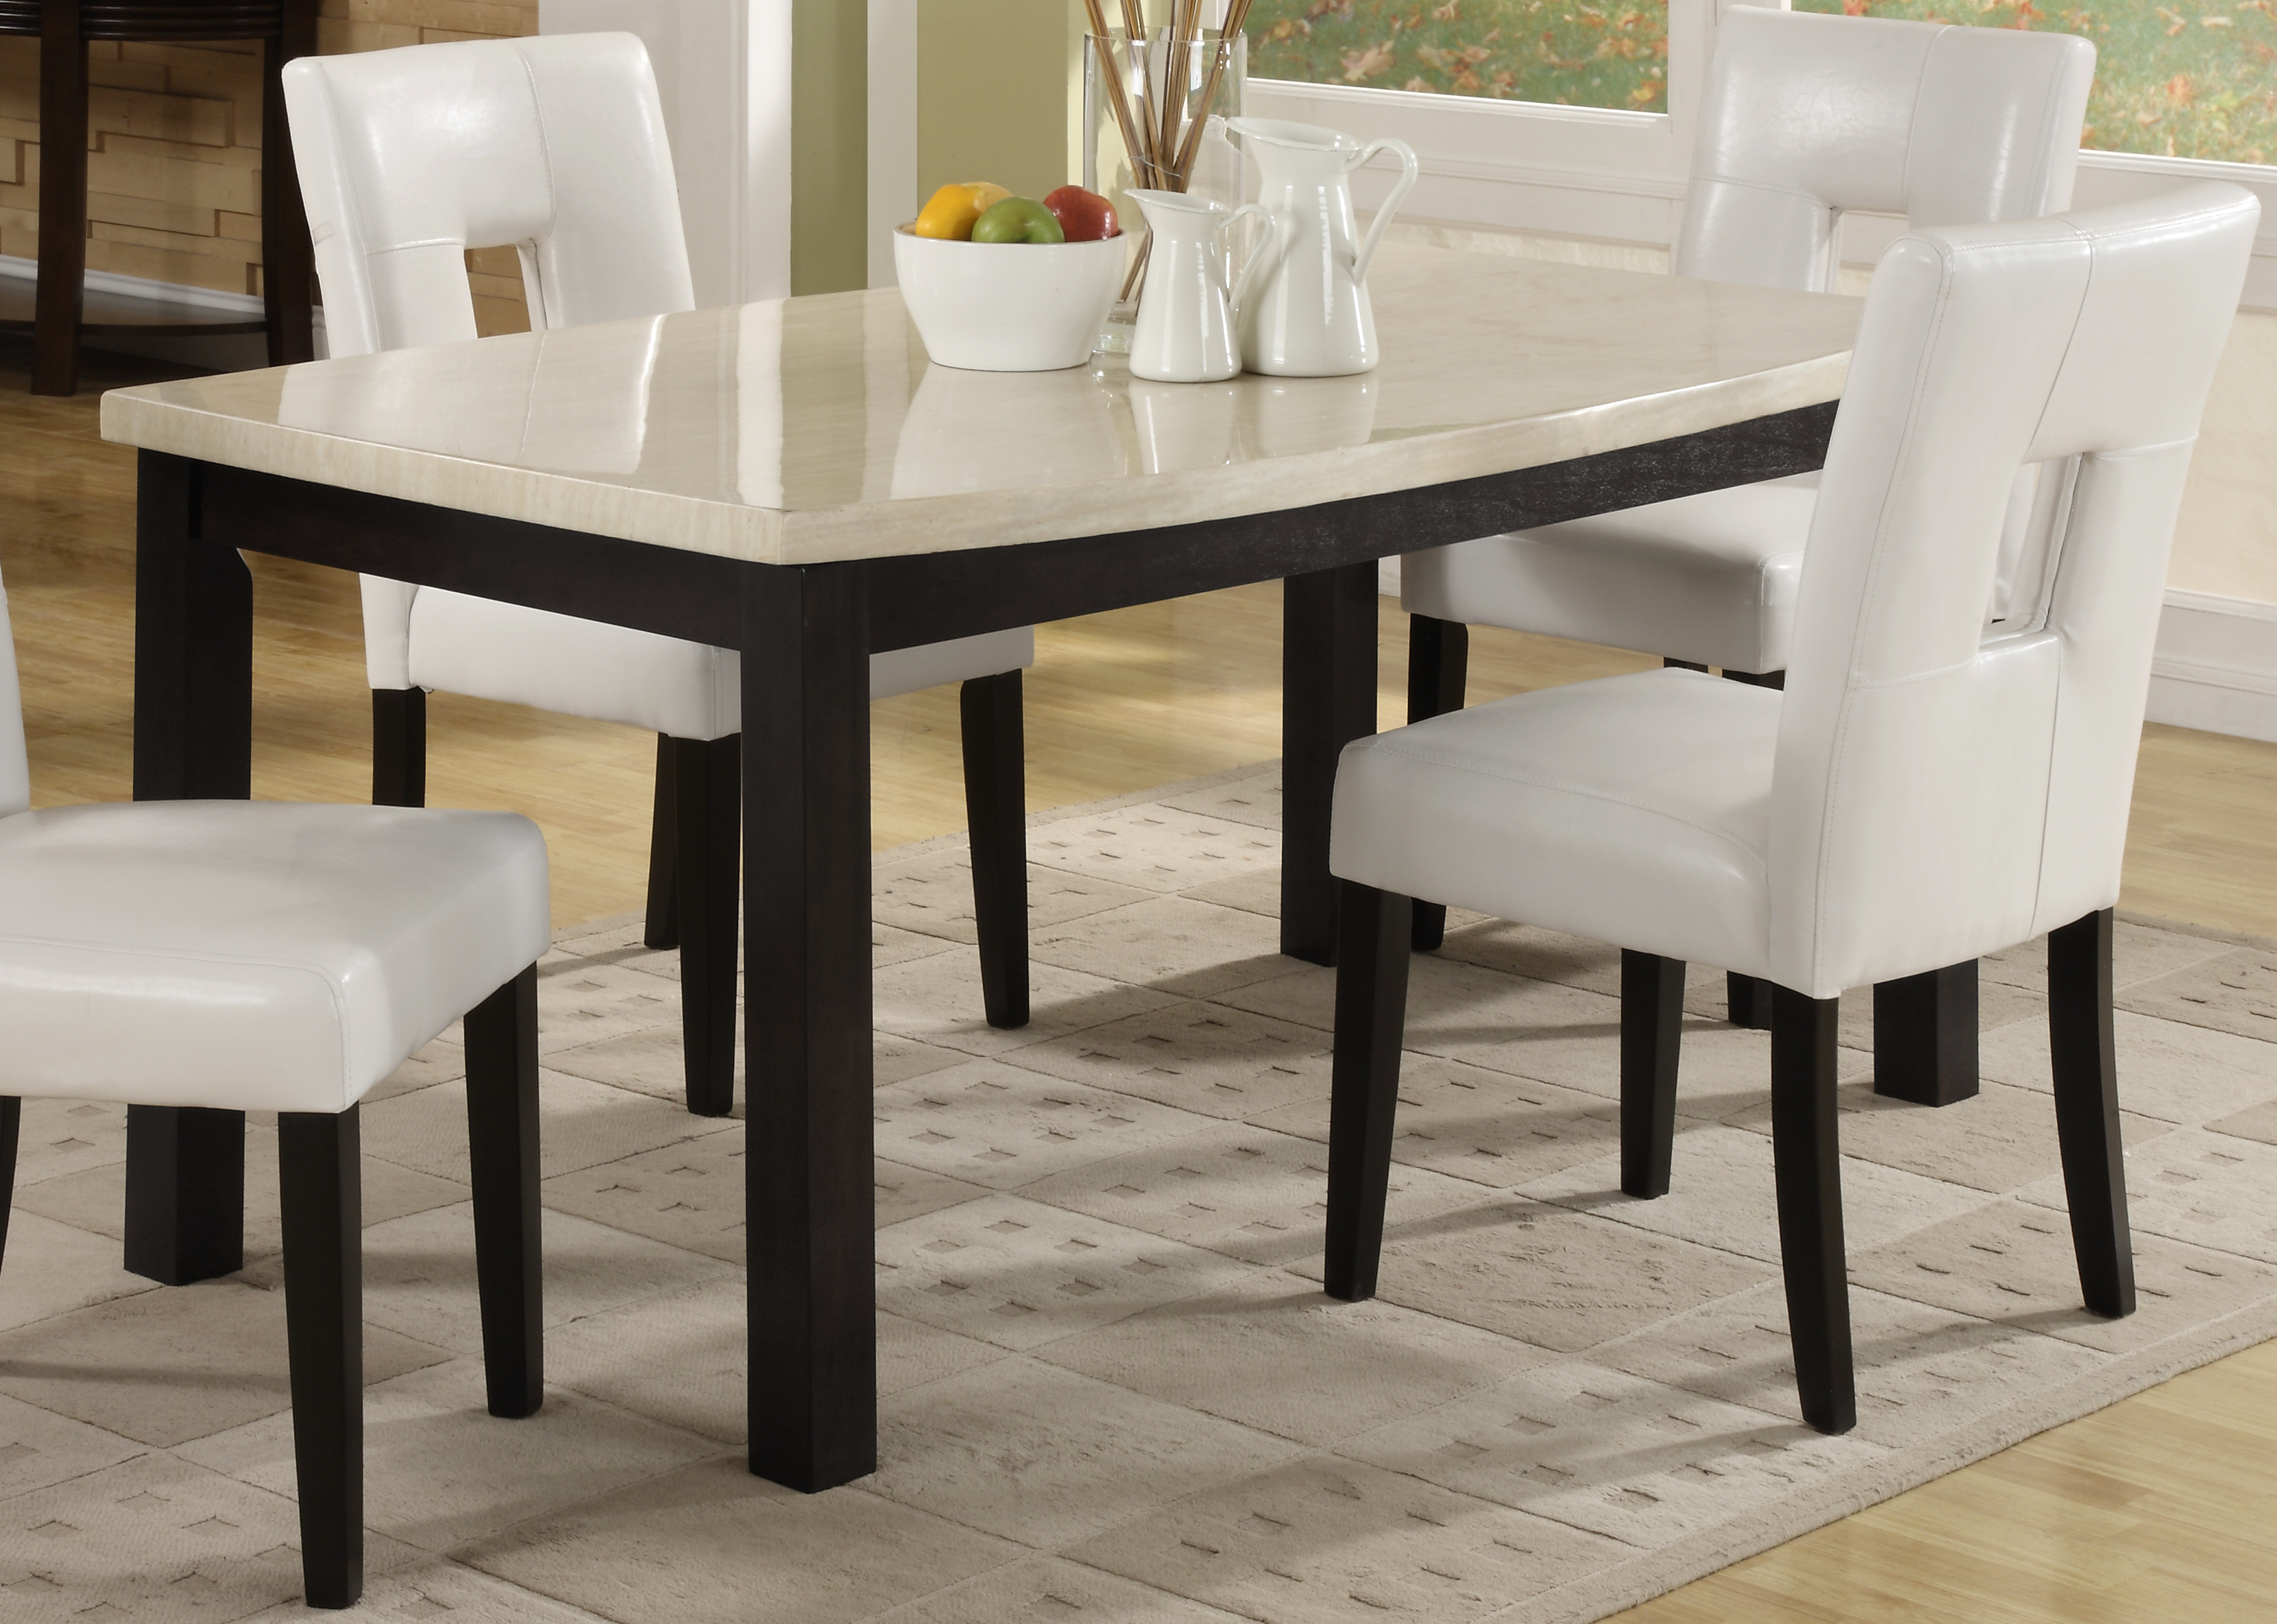 Homelegance archstone white square dining table